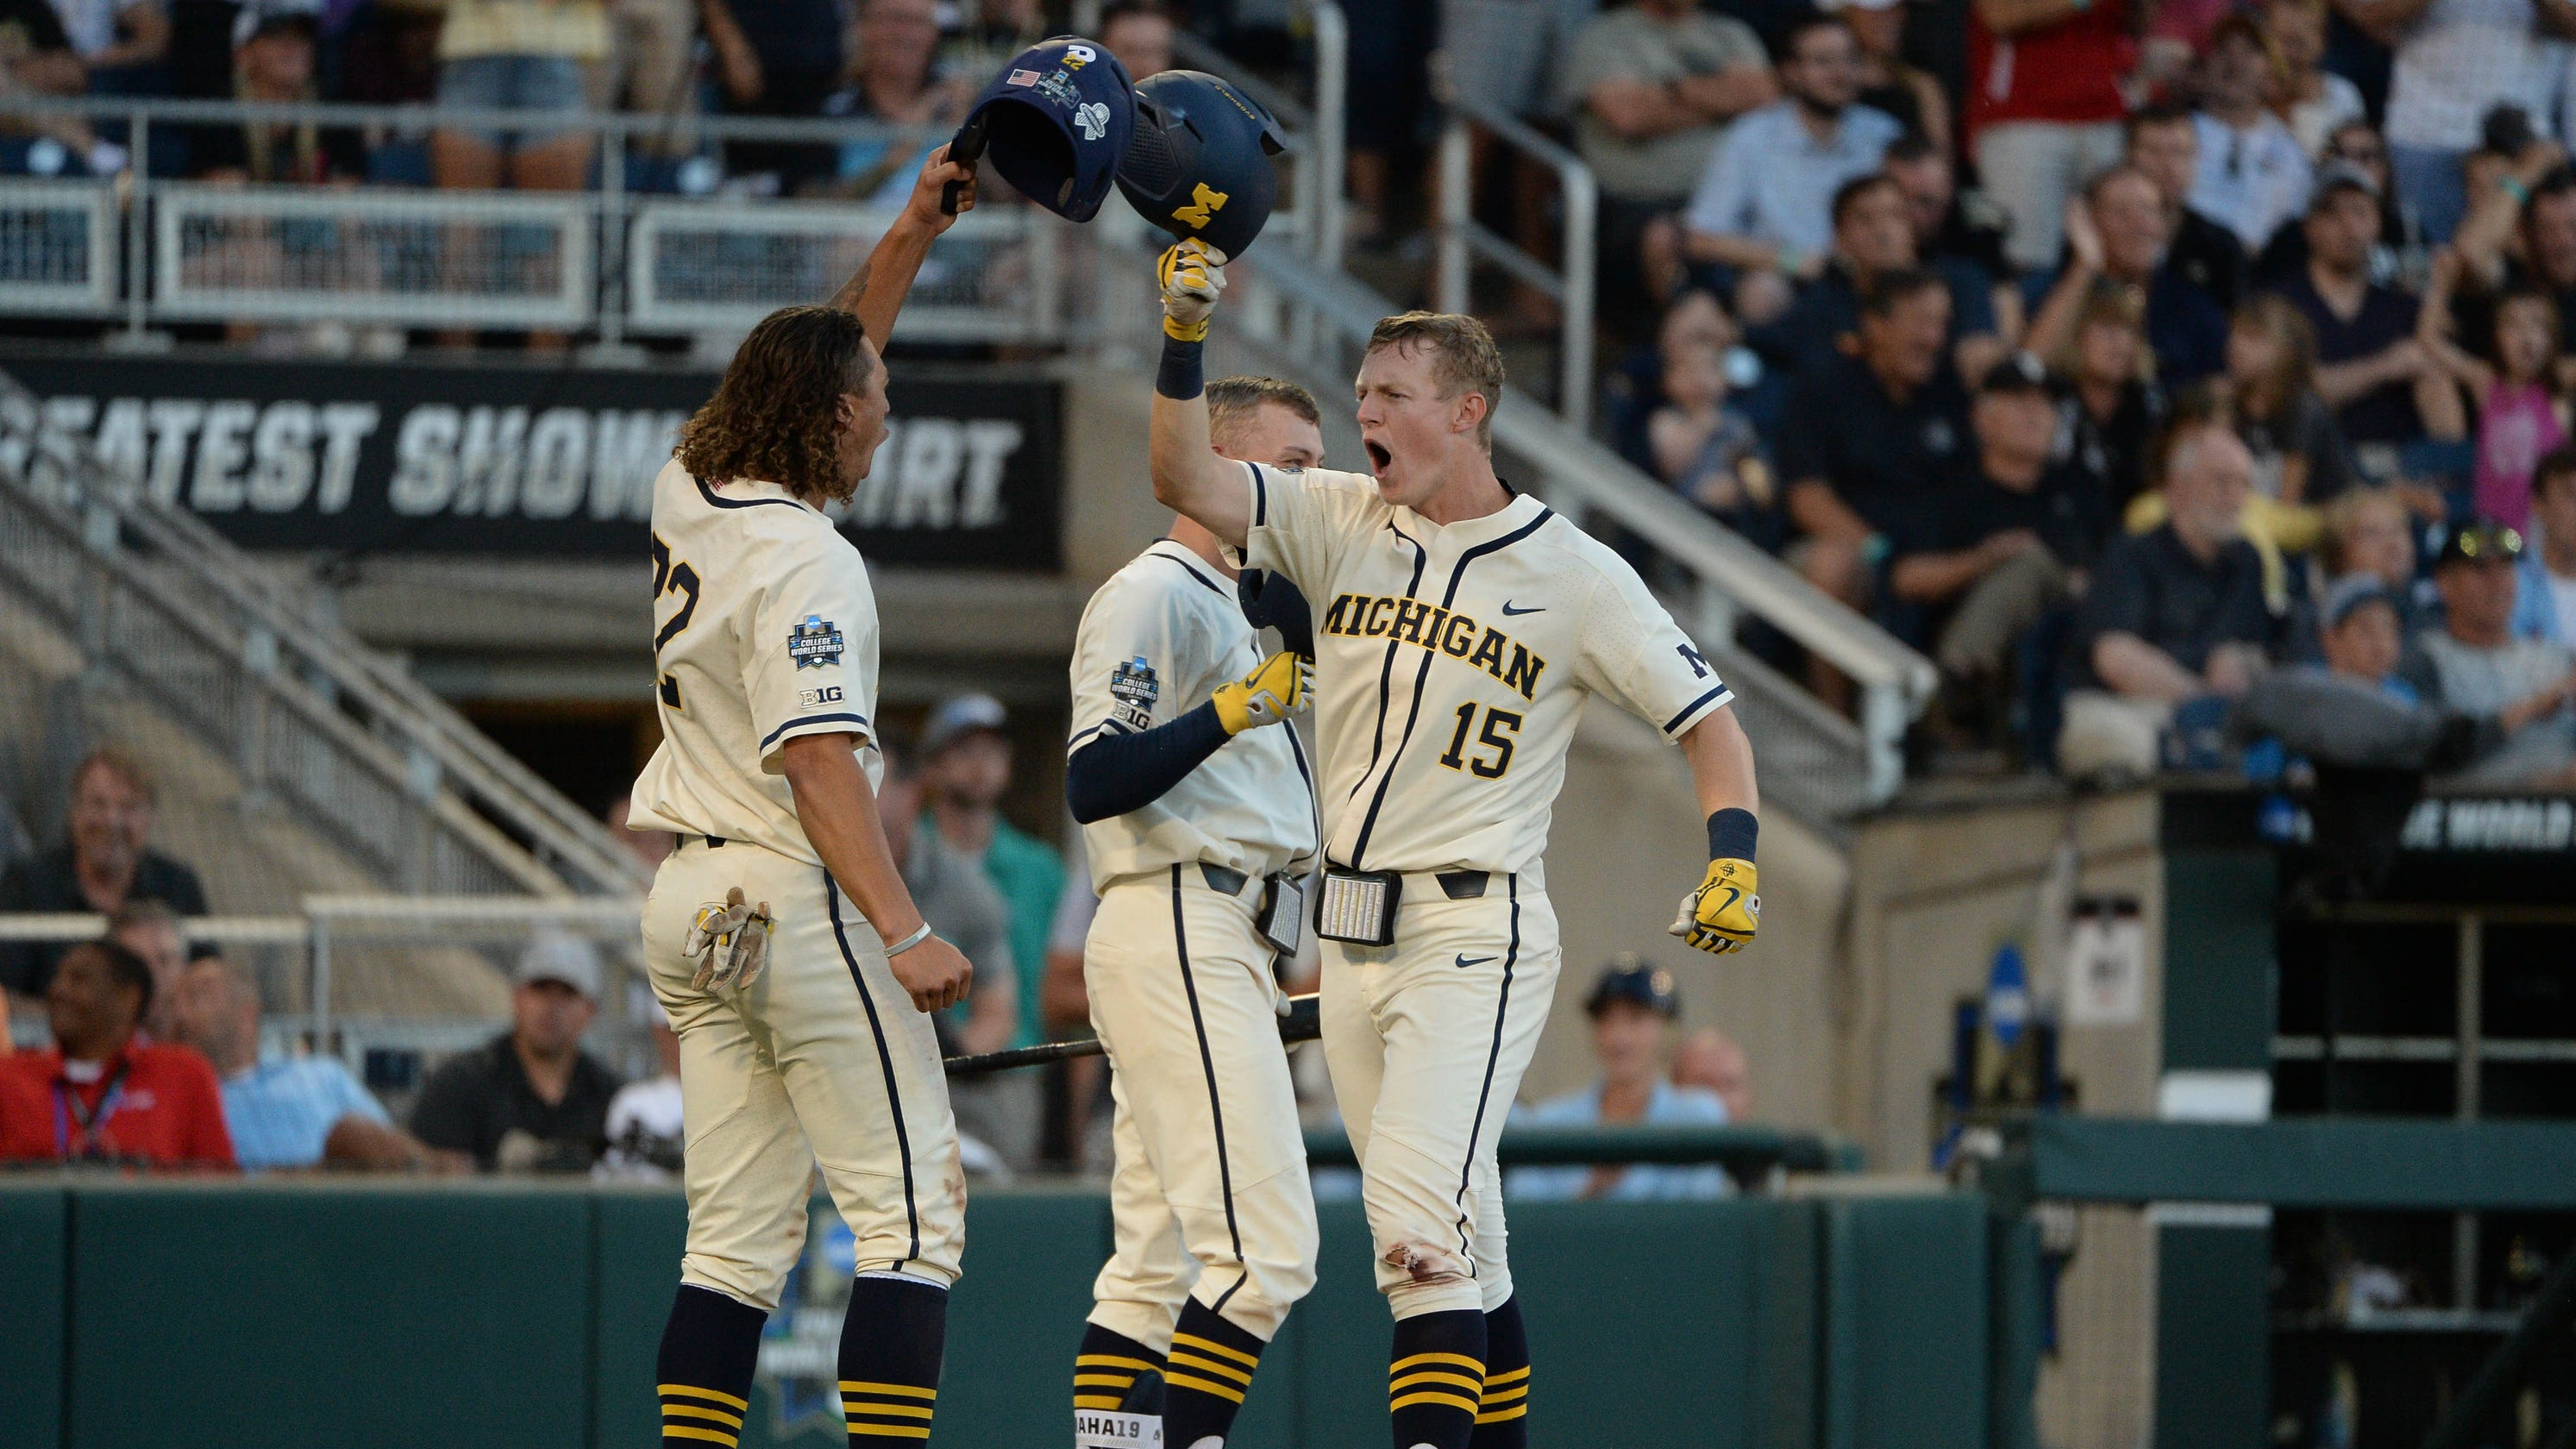 College World Series: Michigan pounds Vanderbilt in Game 1 of championship series